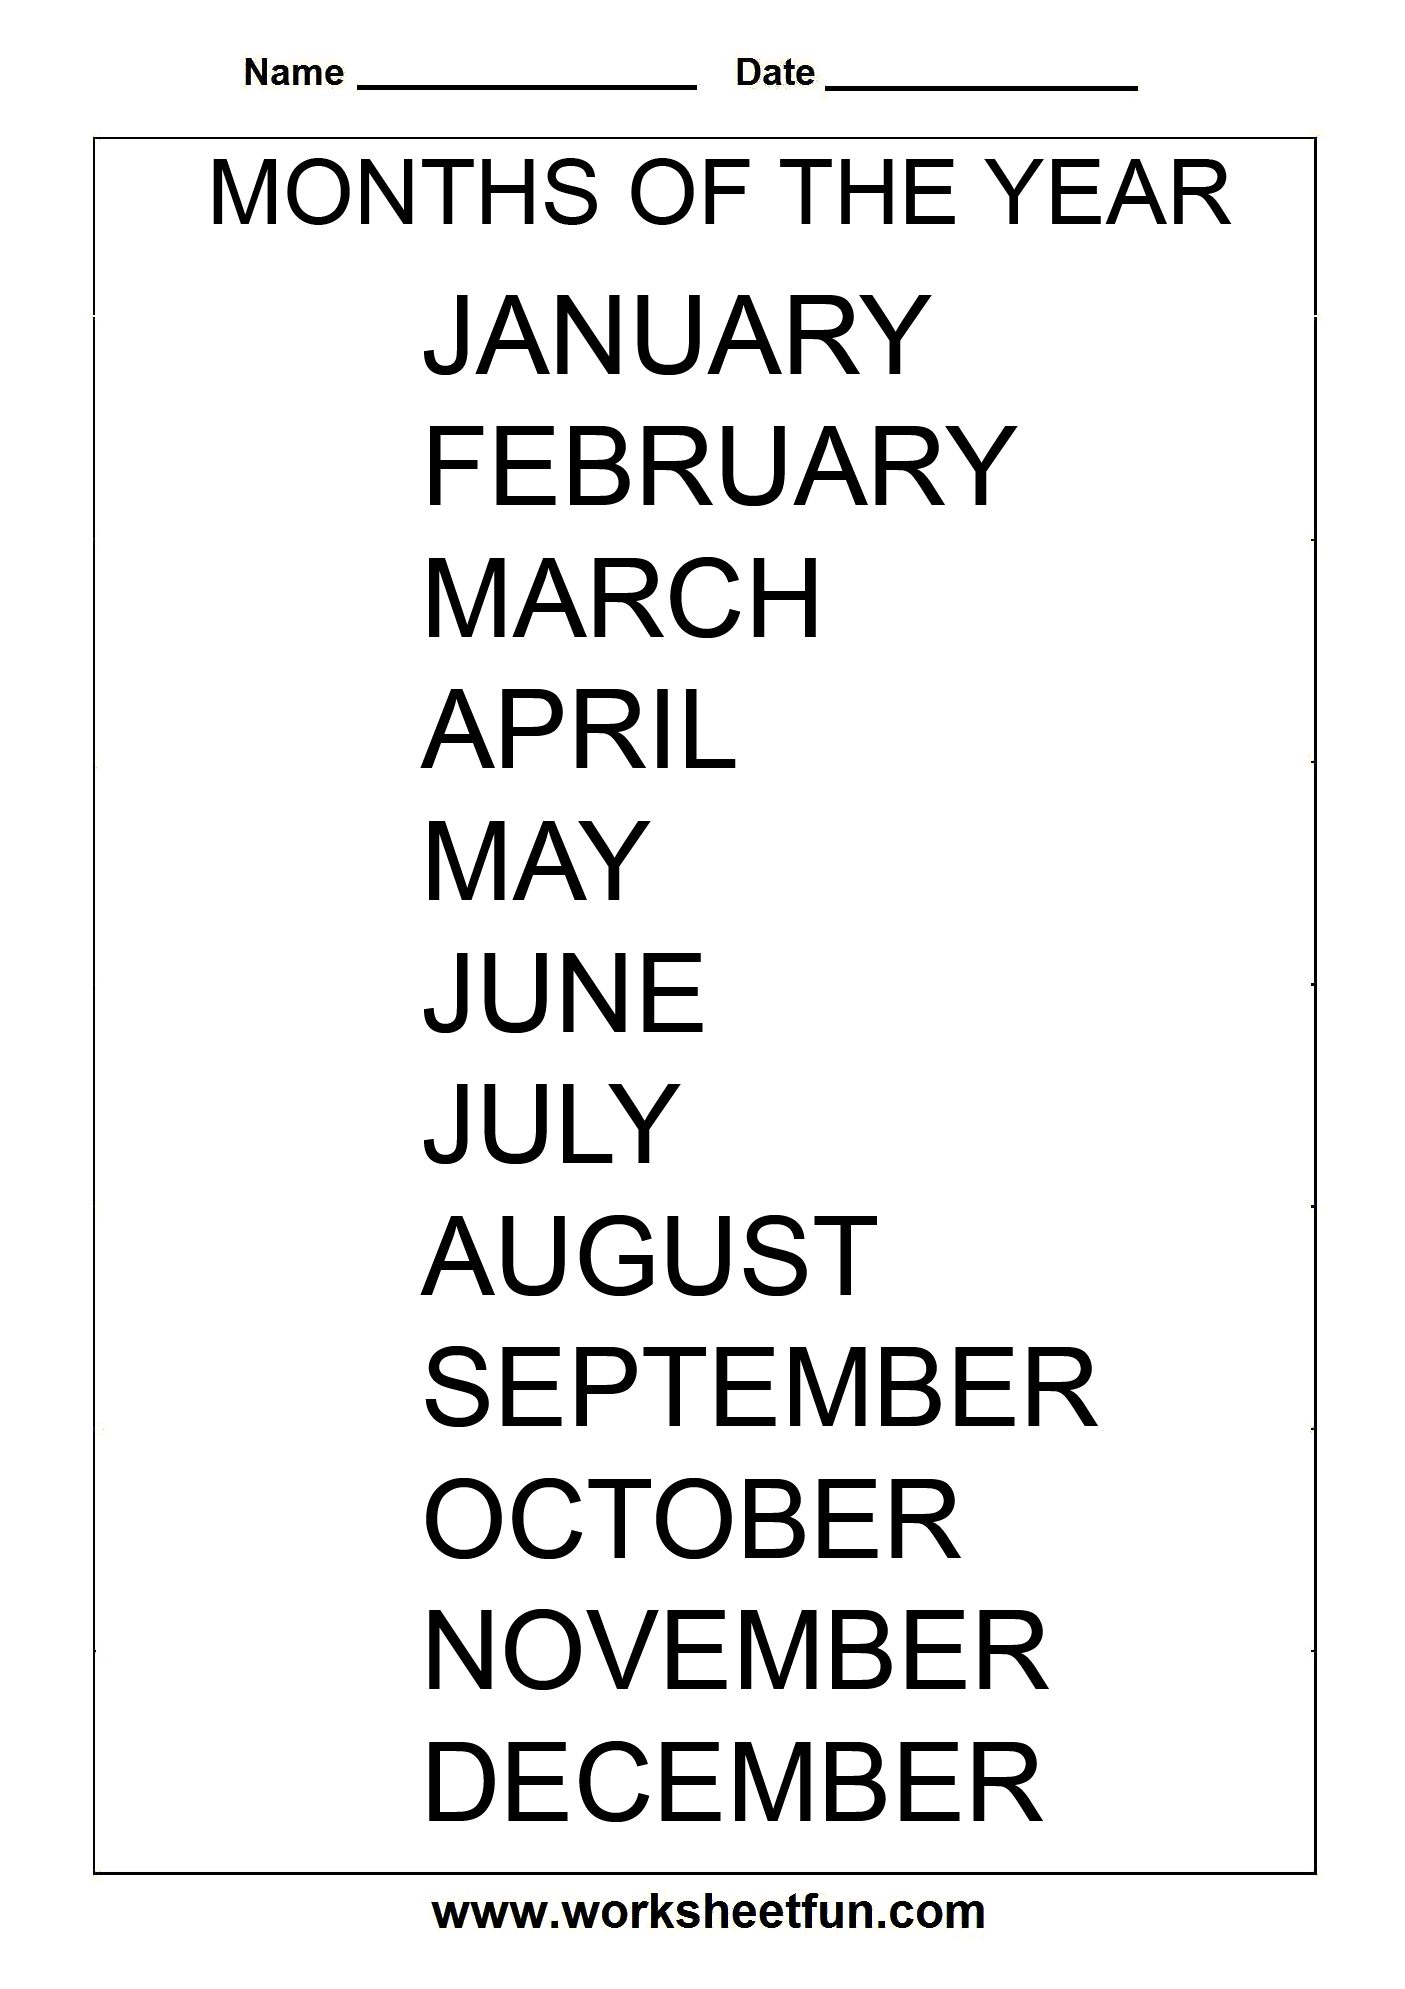 Months Of The Year 1 Worksheet Free Printable Worksheets Worksheetfun